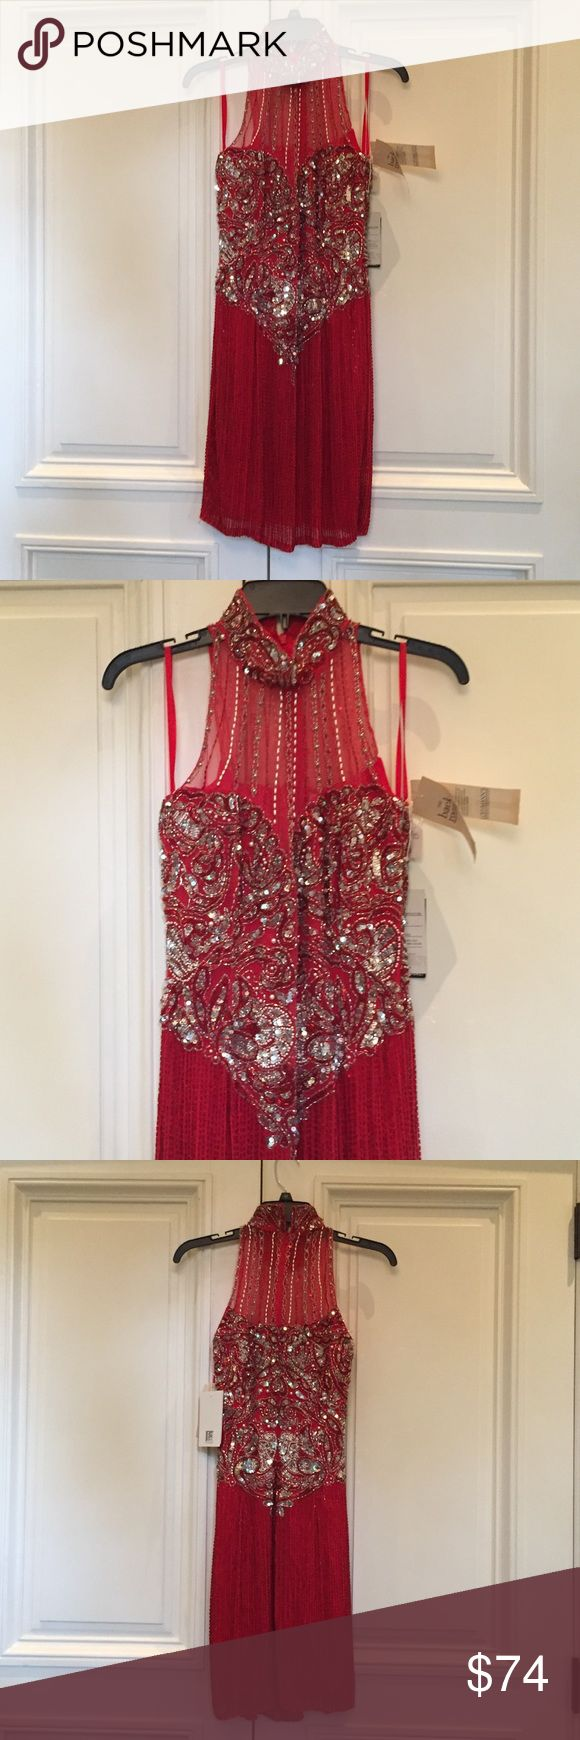 """Gorgeous Red Beaded Flapper Style Evening Dress NWT. Wowee Zoweee! This Ruby Red Flapper Style """"Niteline"""" Beaded Dress is absolutely stunning!! Wear this Statement Piece to Prom, Homecoming Dance, themed Socials, & Gala Ball Events! Ruby Red 100% Silk Shell is hand stitched with red bugle beads, silver sequins, & pearls. The rayon lining is sewn in - makes for a comfortable fit. Size 6.Bust 17"""" Waist 13.5"""" Length under arm to hem27"""" Neck 14"""" Niteline Dresses Mini"""